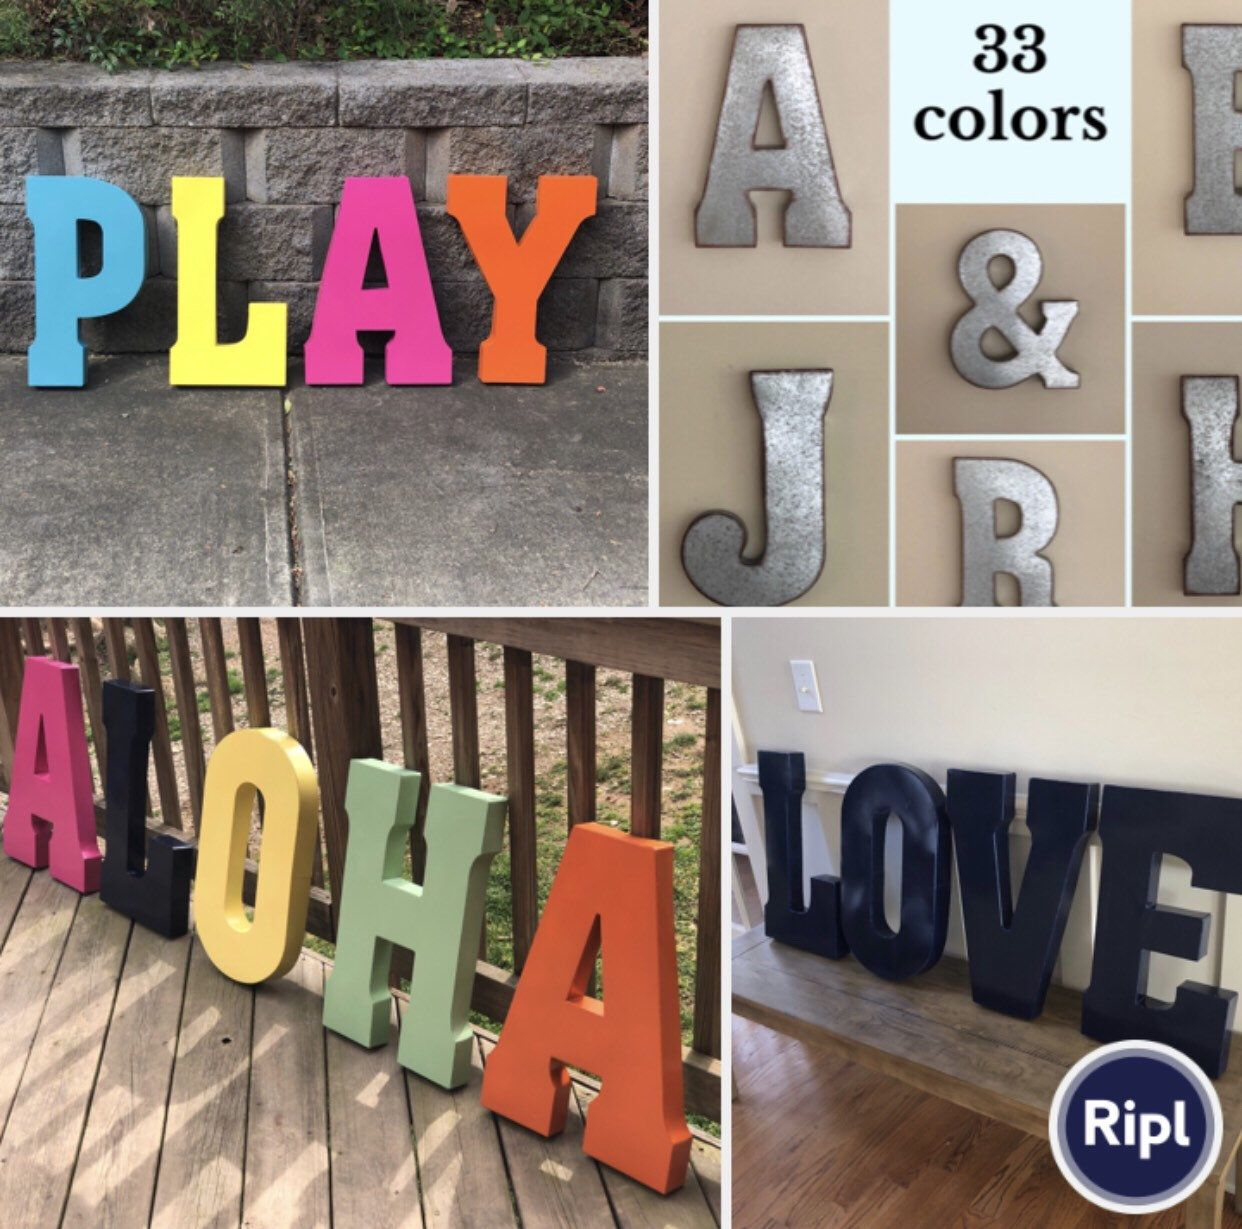 Extra Large Metal Letters/pick Color/word Play/playroom